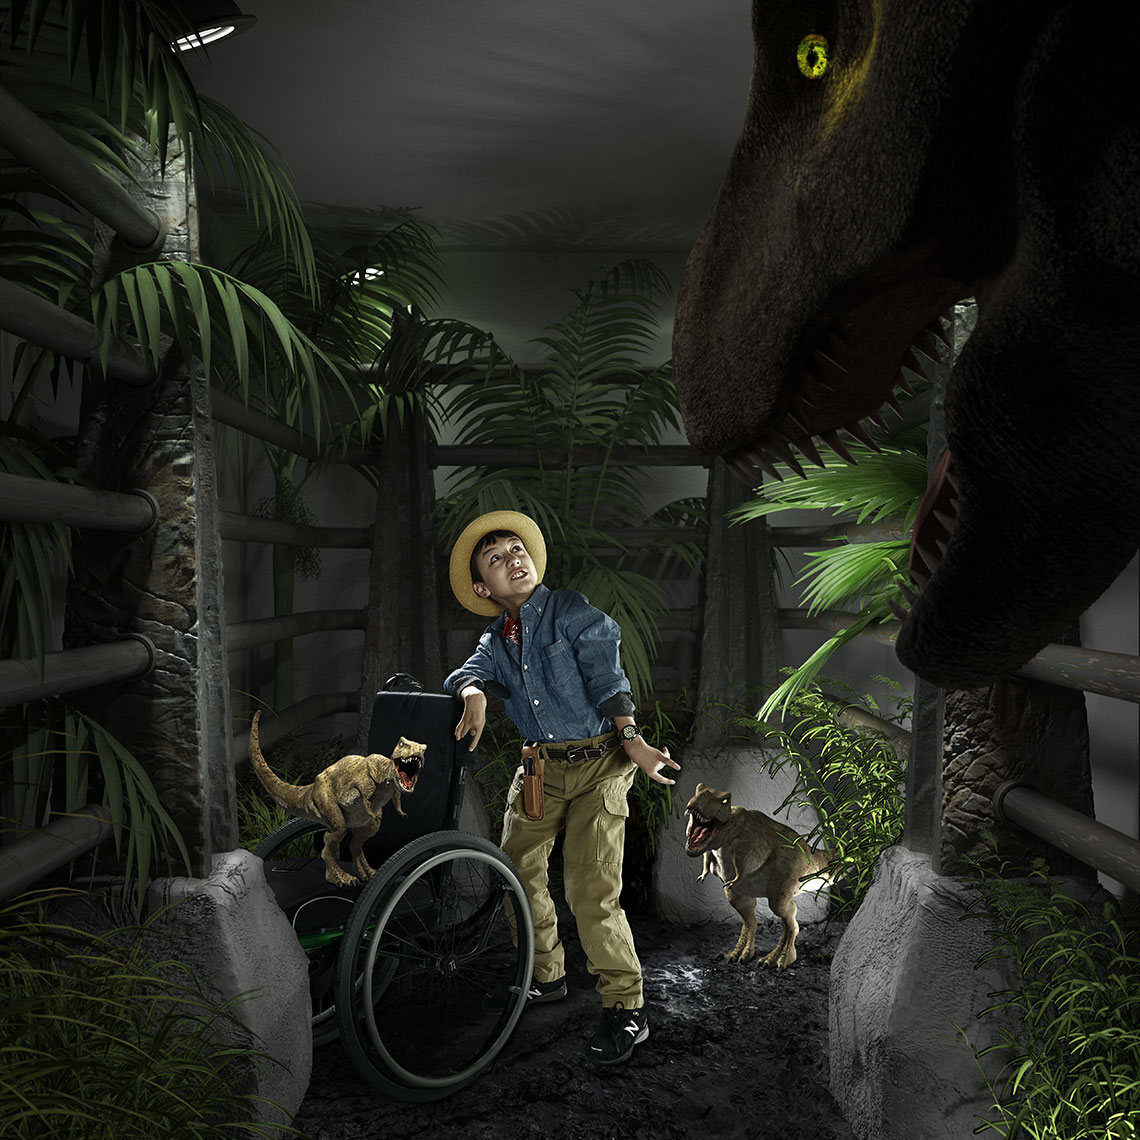 Young boy surrounded by dinosaurs